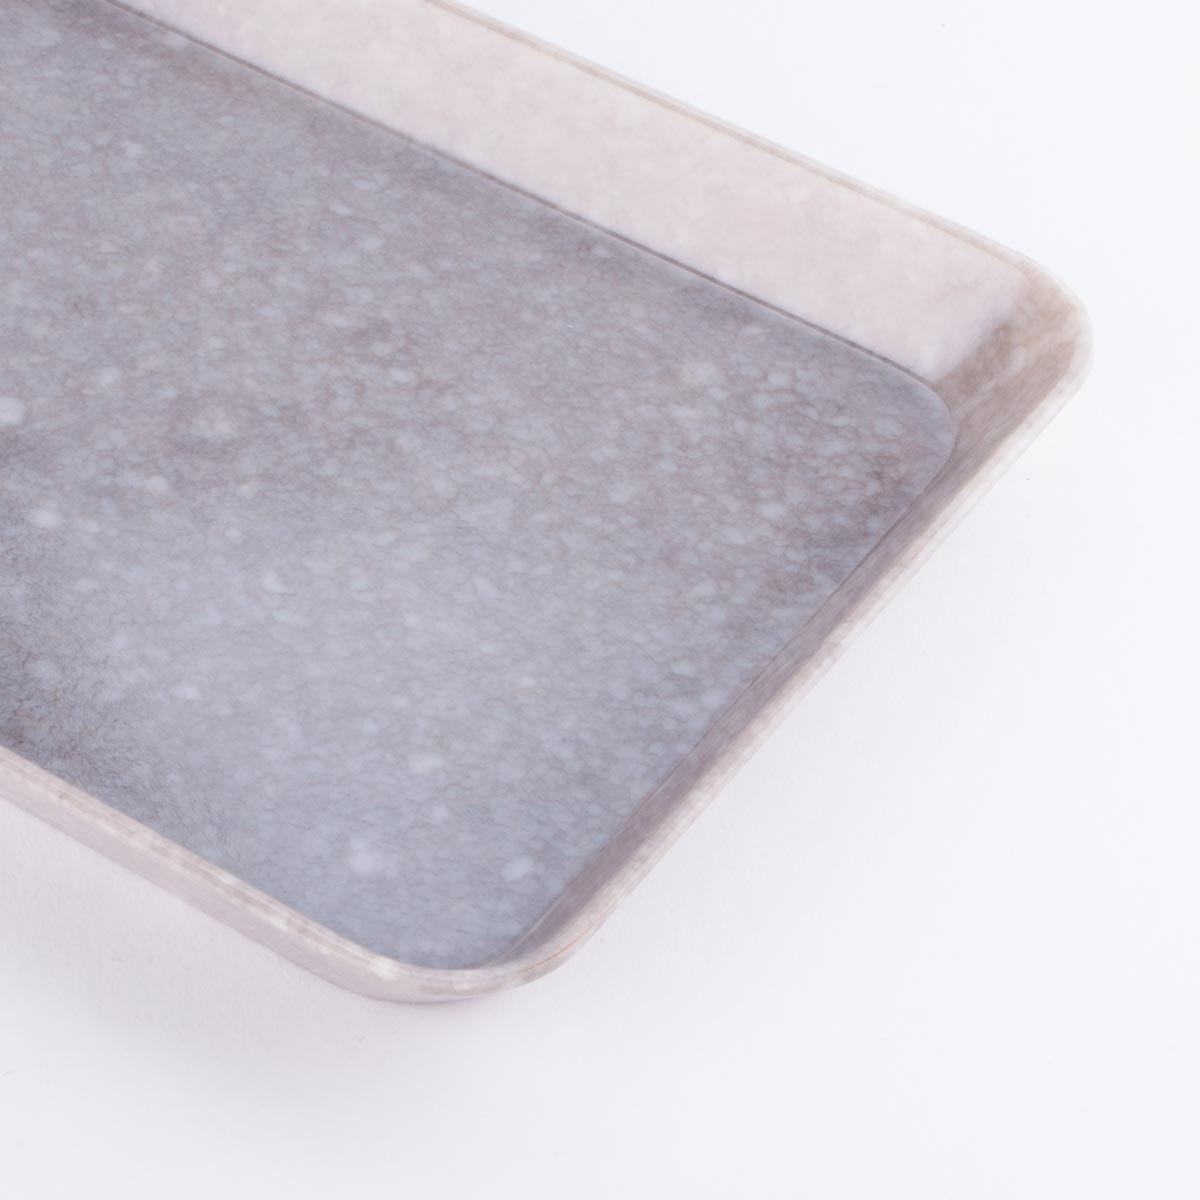 grey marbled desk tray